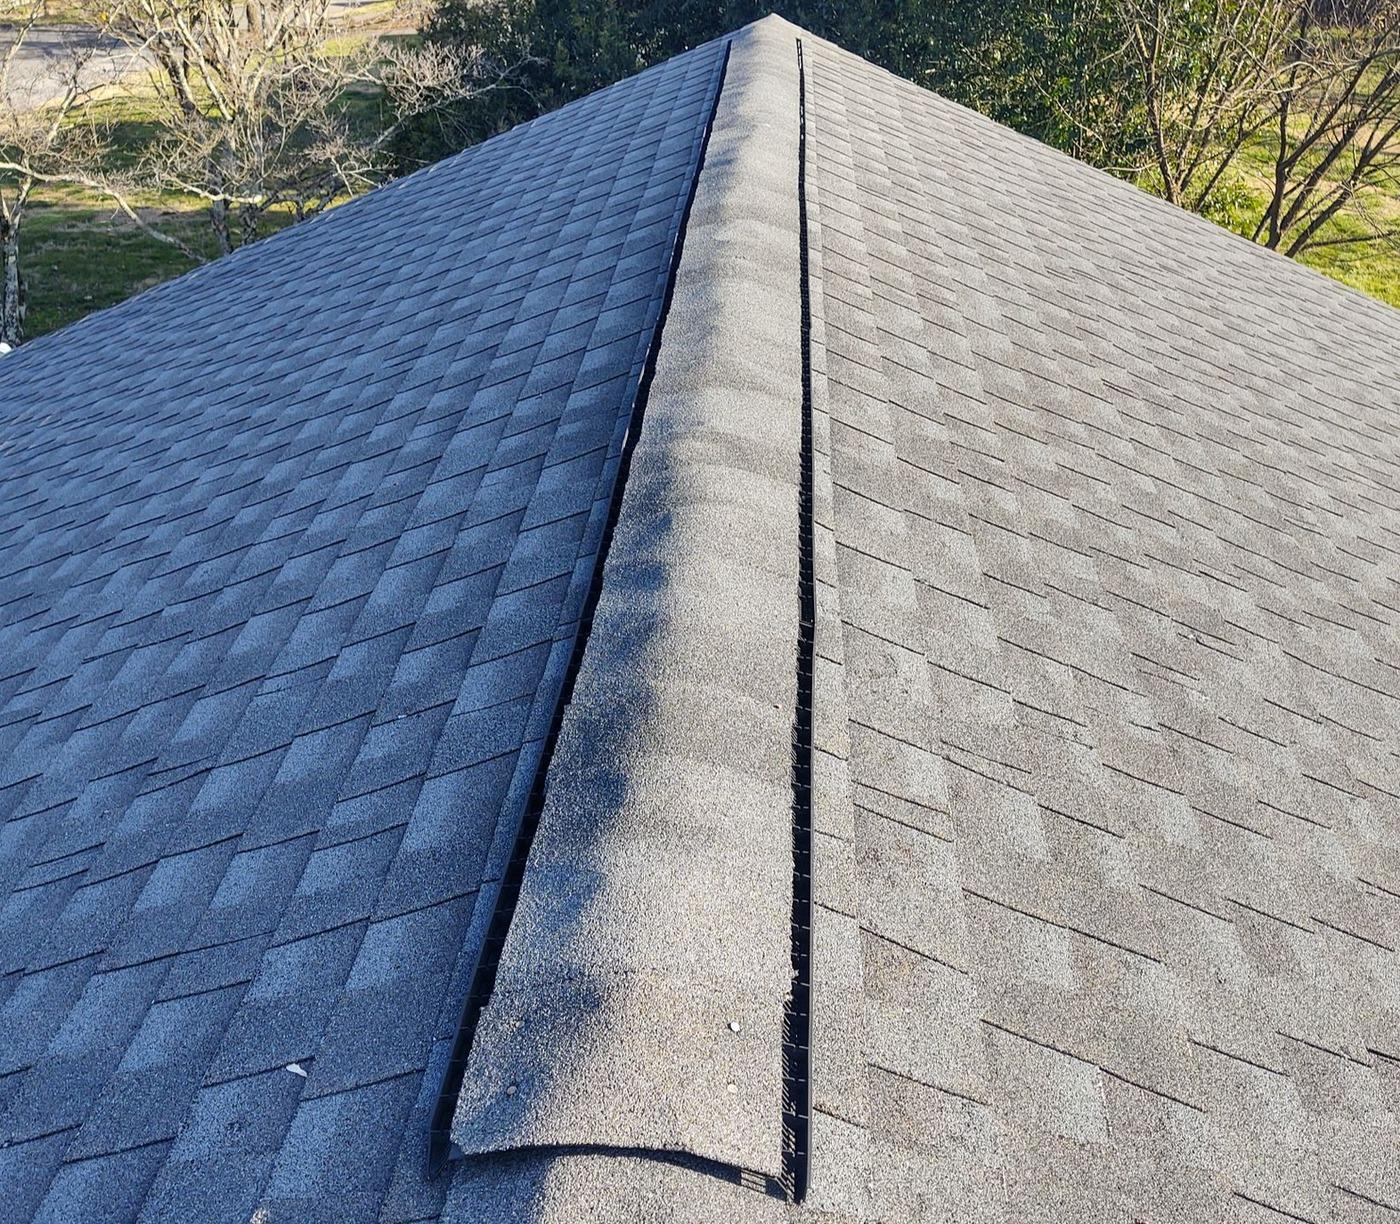 Roof Replacement Near Blaine, TN - Before Photo